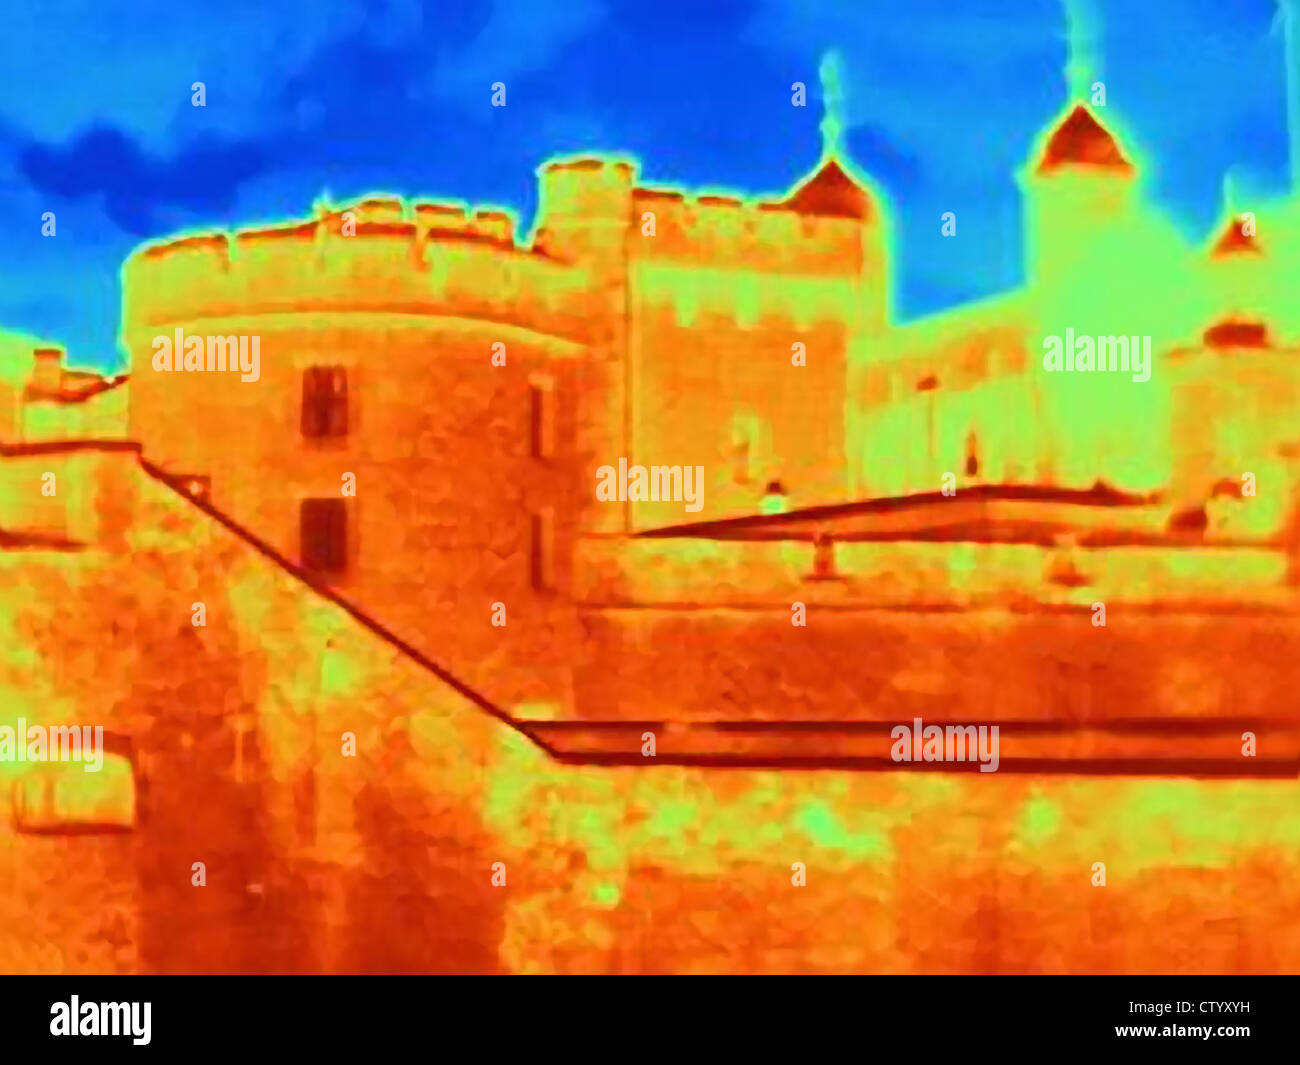 Wärmebild der Tower of London Stockbild